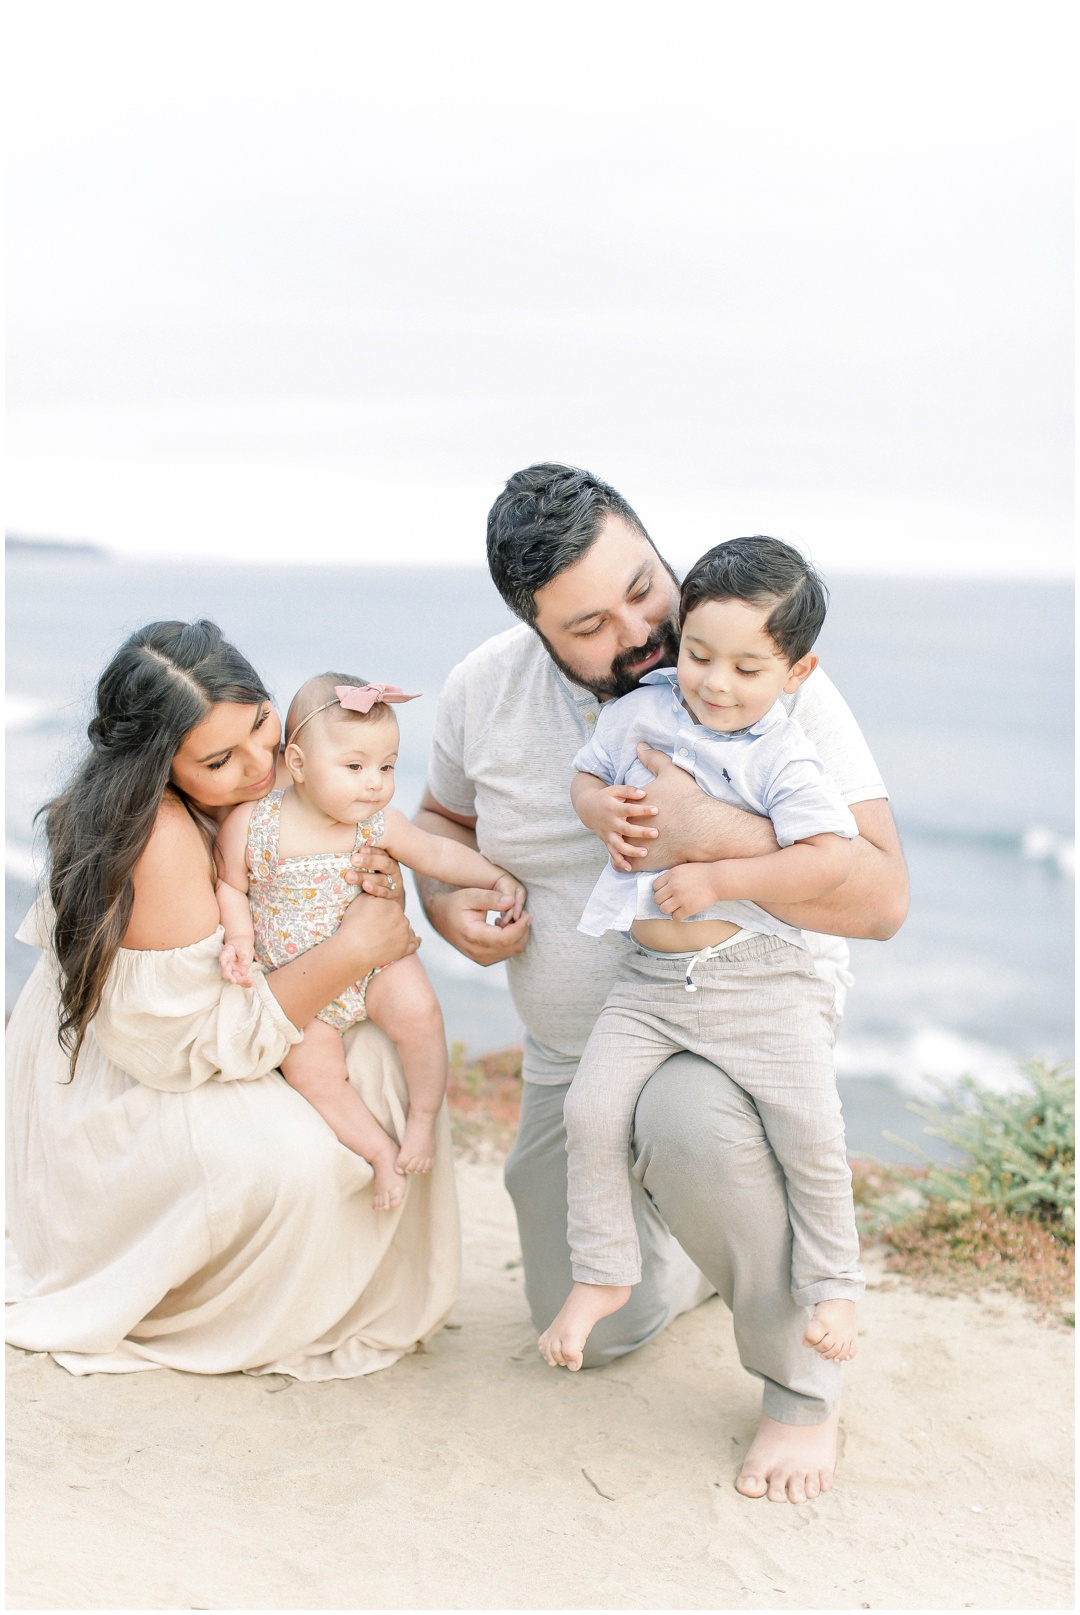 Newport_Beach_Newborn_Light_Airy_Natural_Photographer_Newport_Beach_Photographer_Orange_County_Family_Photographer_Cori_Kleckner_Photography_Huntington_Beach_Photographer_Family_OC_Newborn_Natalie_Nunez_Thomas_Nunez_Natalie_Roca_Rosh_Nunez_Family_3549.jpg